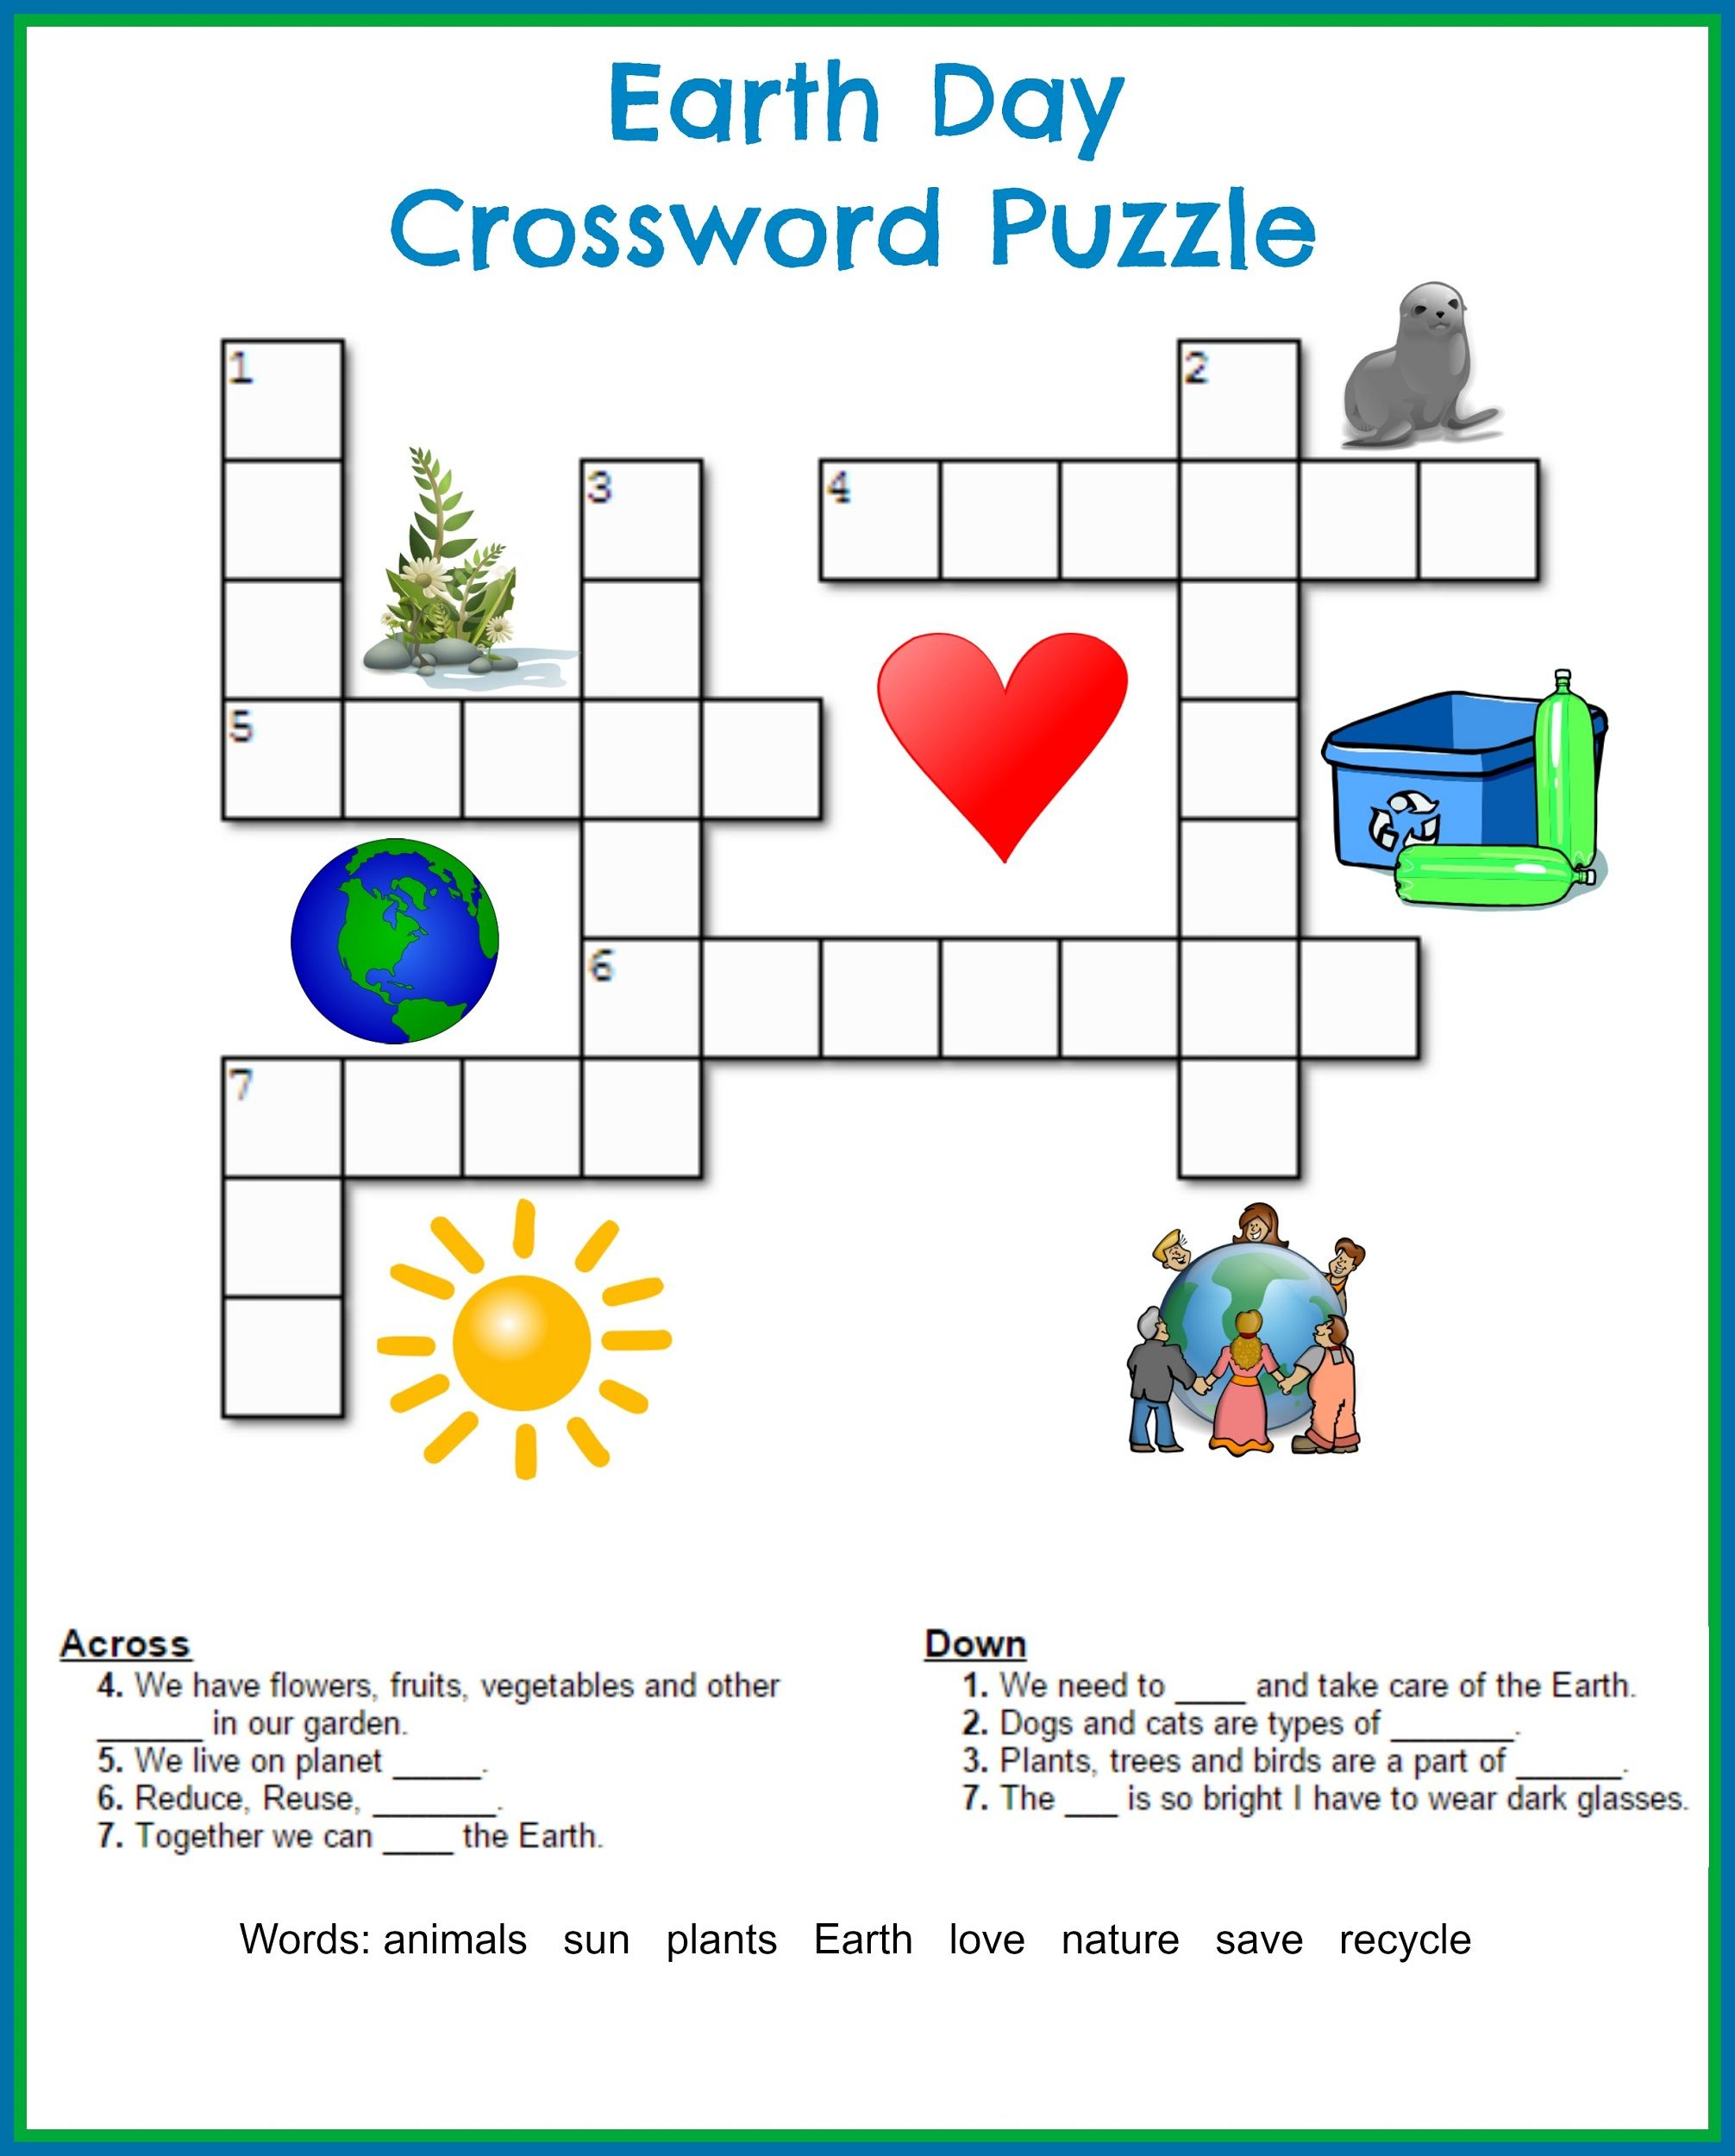 Fan image for kids crossword puzzle printable